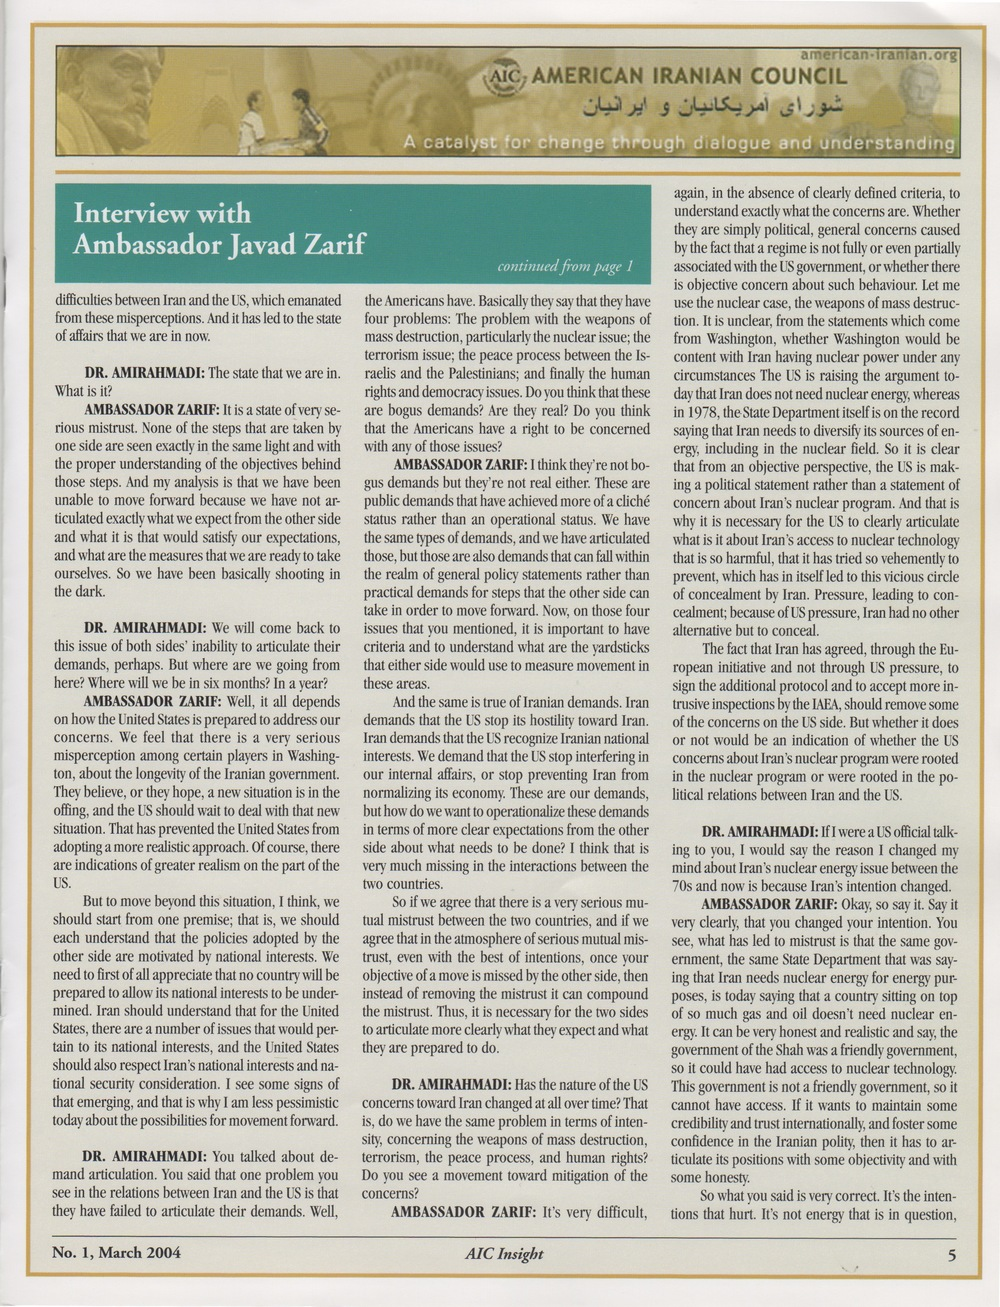 2004 Javad Zarif Interview 2.jpeg